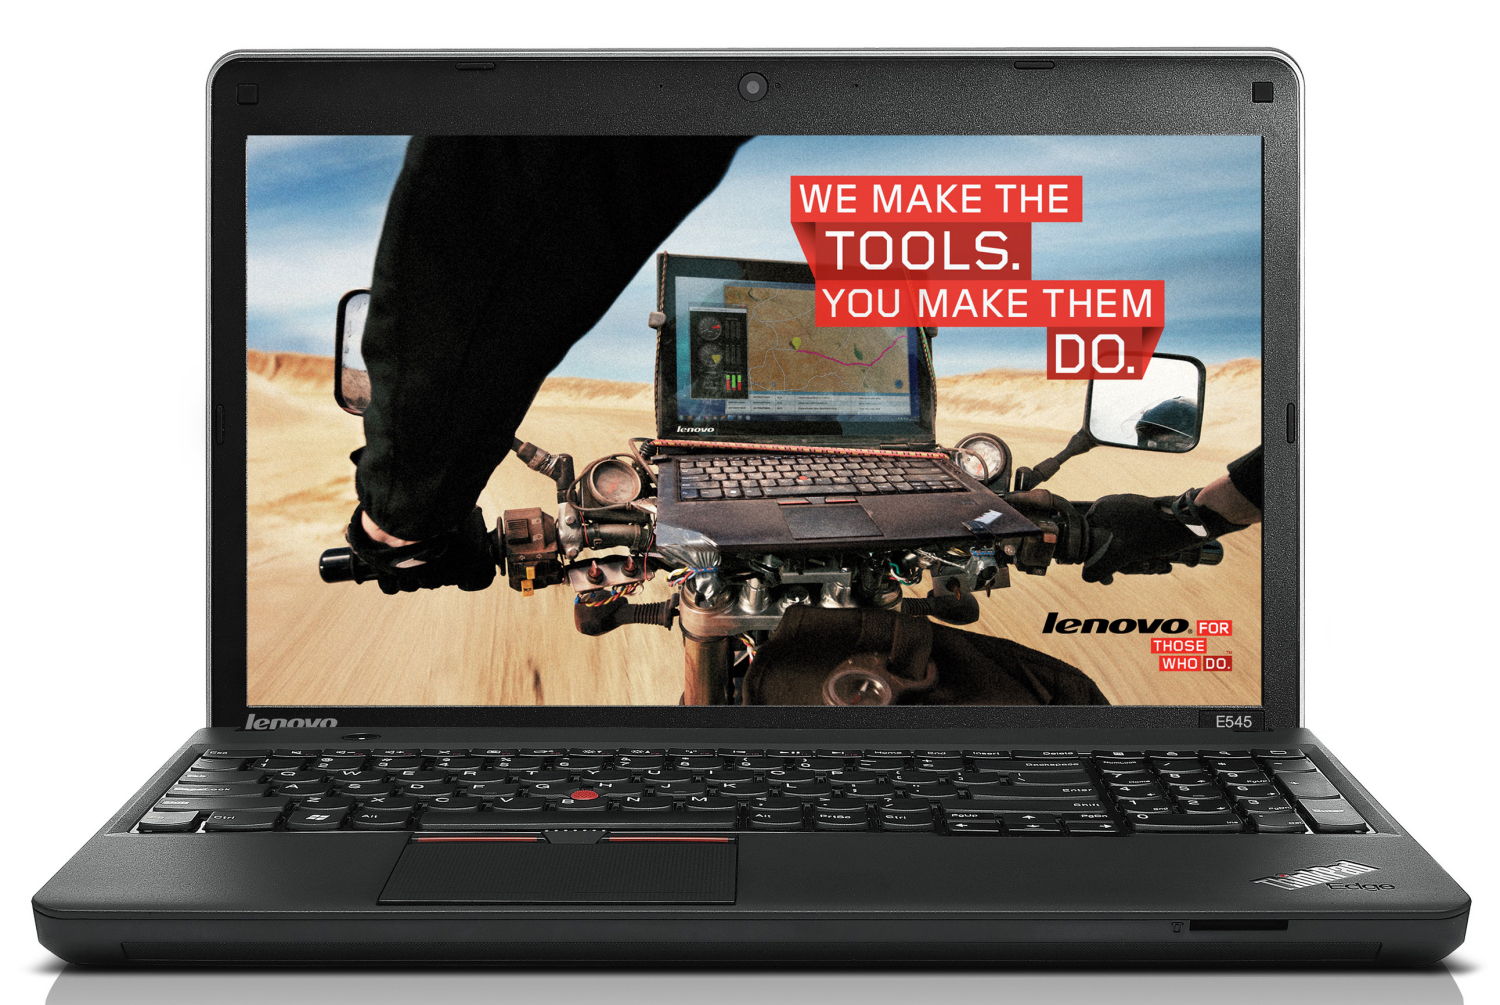 Lenovo ThinkPad Edge E535 Broadcom Bluetooth Drivers for Mac